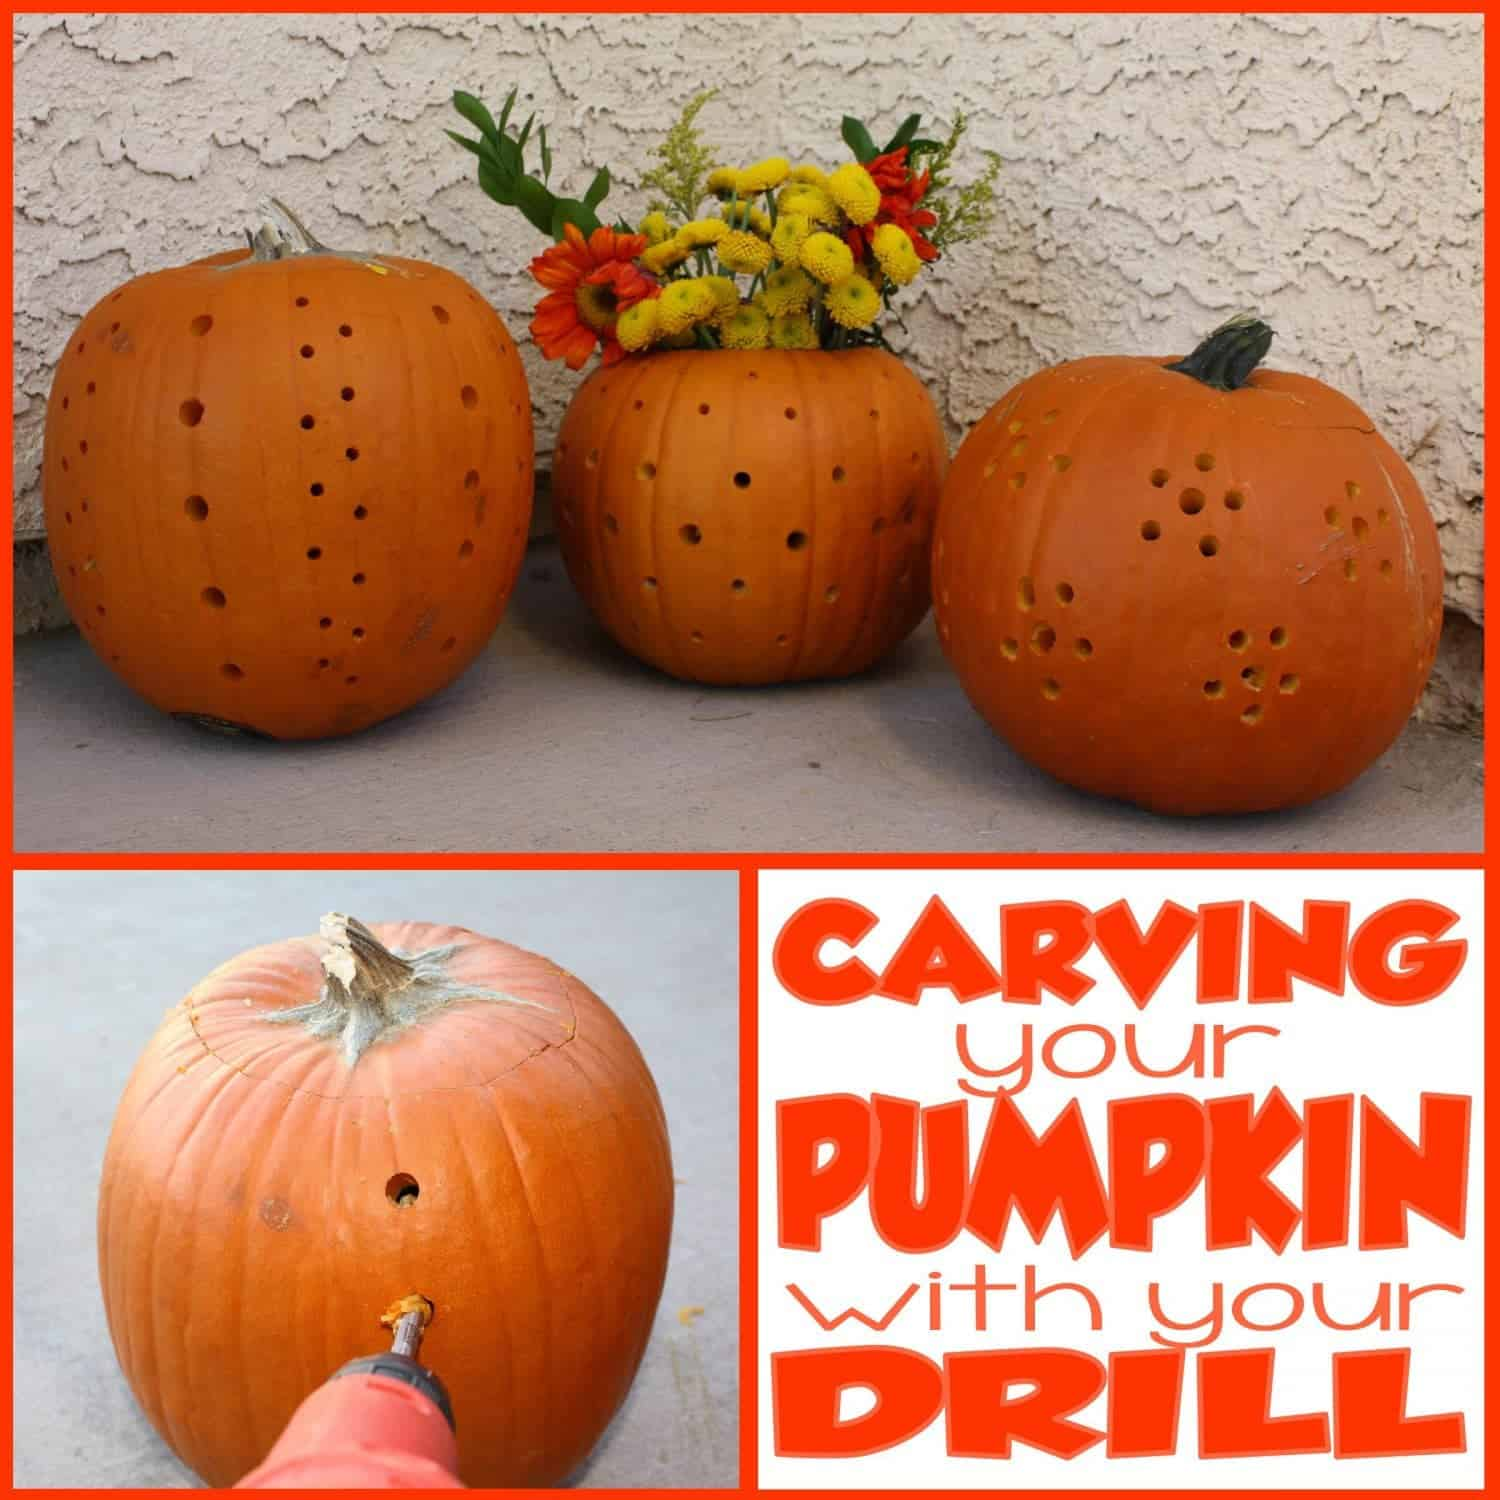 Halloween Pumpkin Carving: Drill Meet Pumpkin, Pumpkin, Drill!